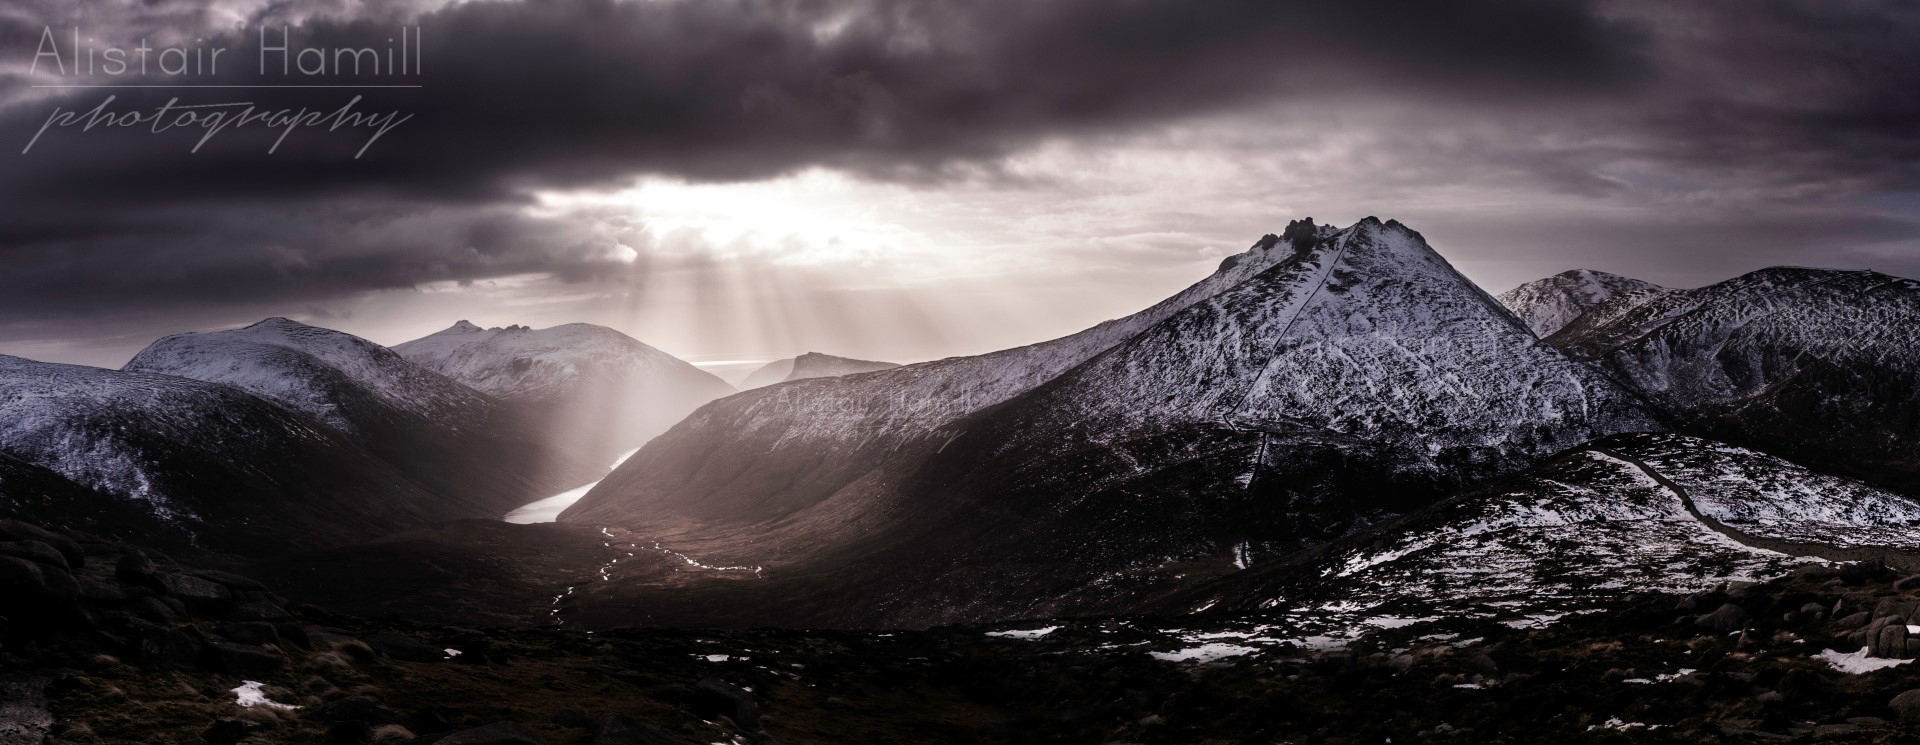 Bearnagh and Silent Valley sunburst big contrast and crop (Large) wm.jpg